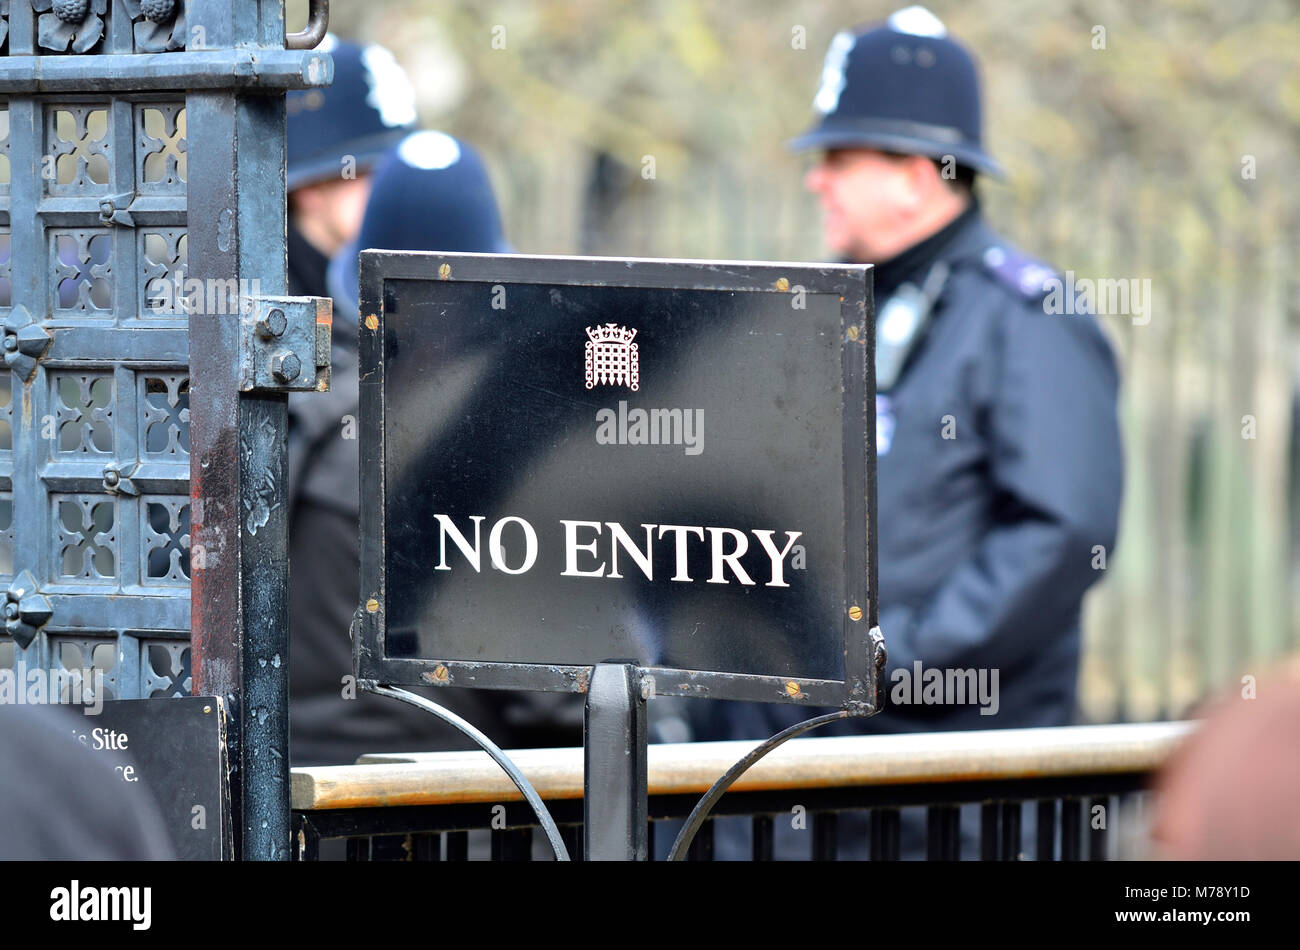 London, England, UK. No Entry sign and police officers at the gates of the Houses of Parliament - Stock Image